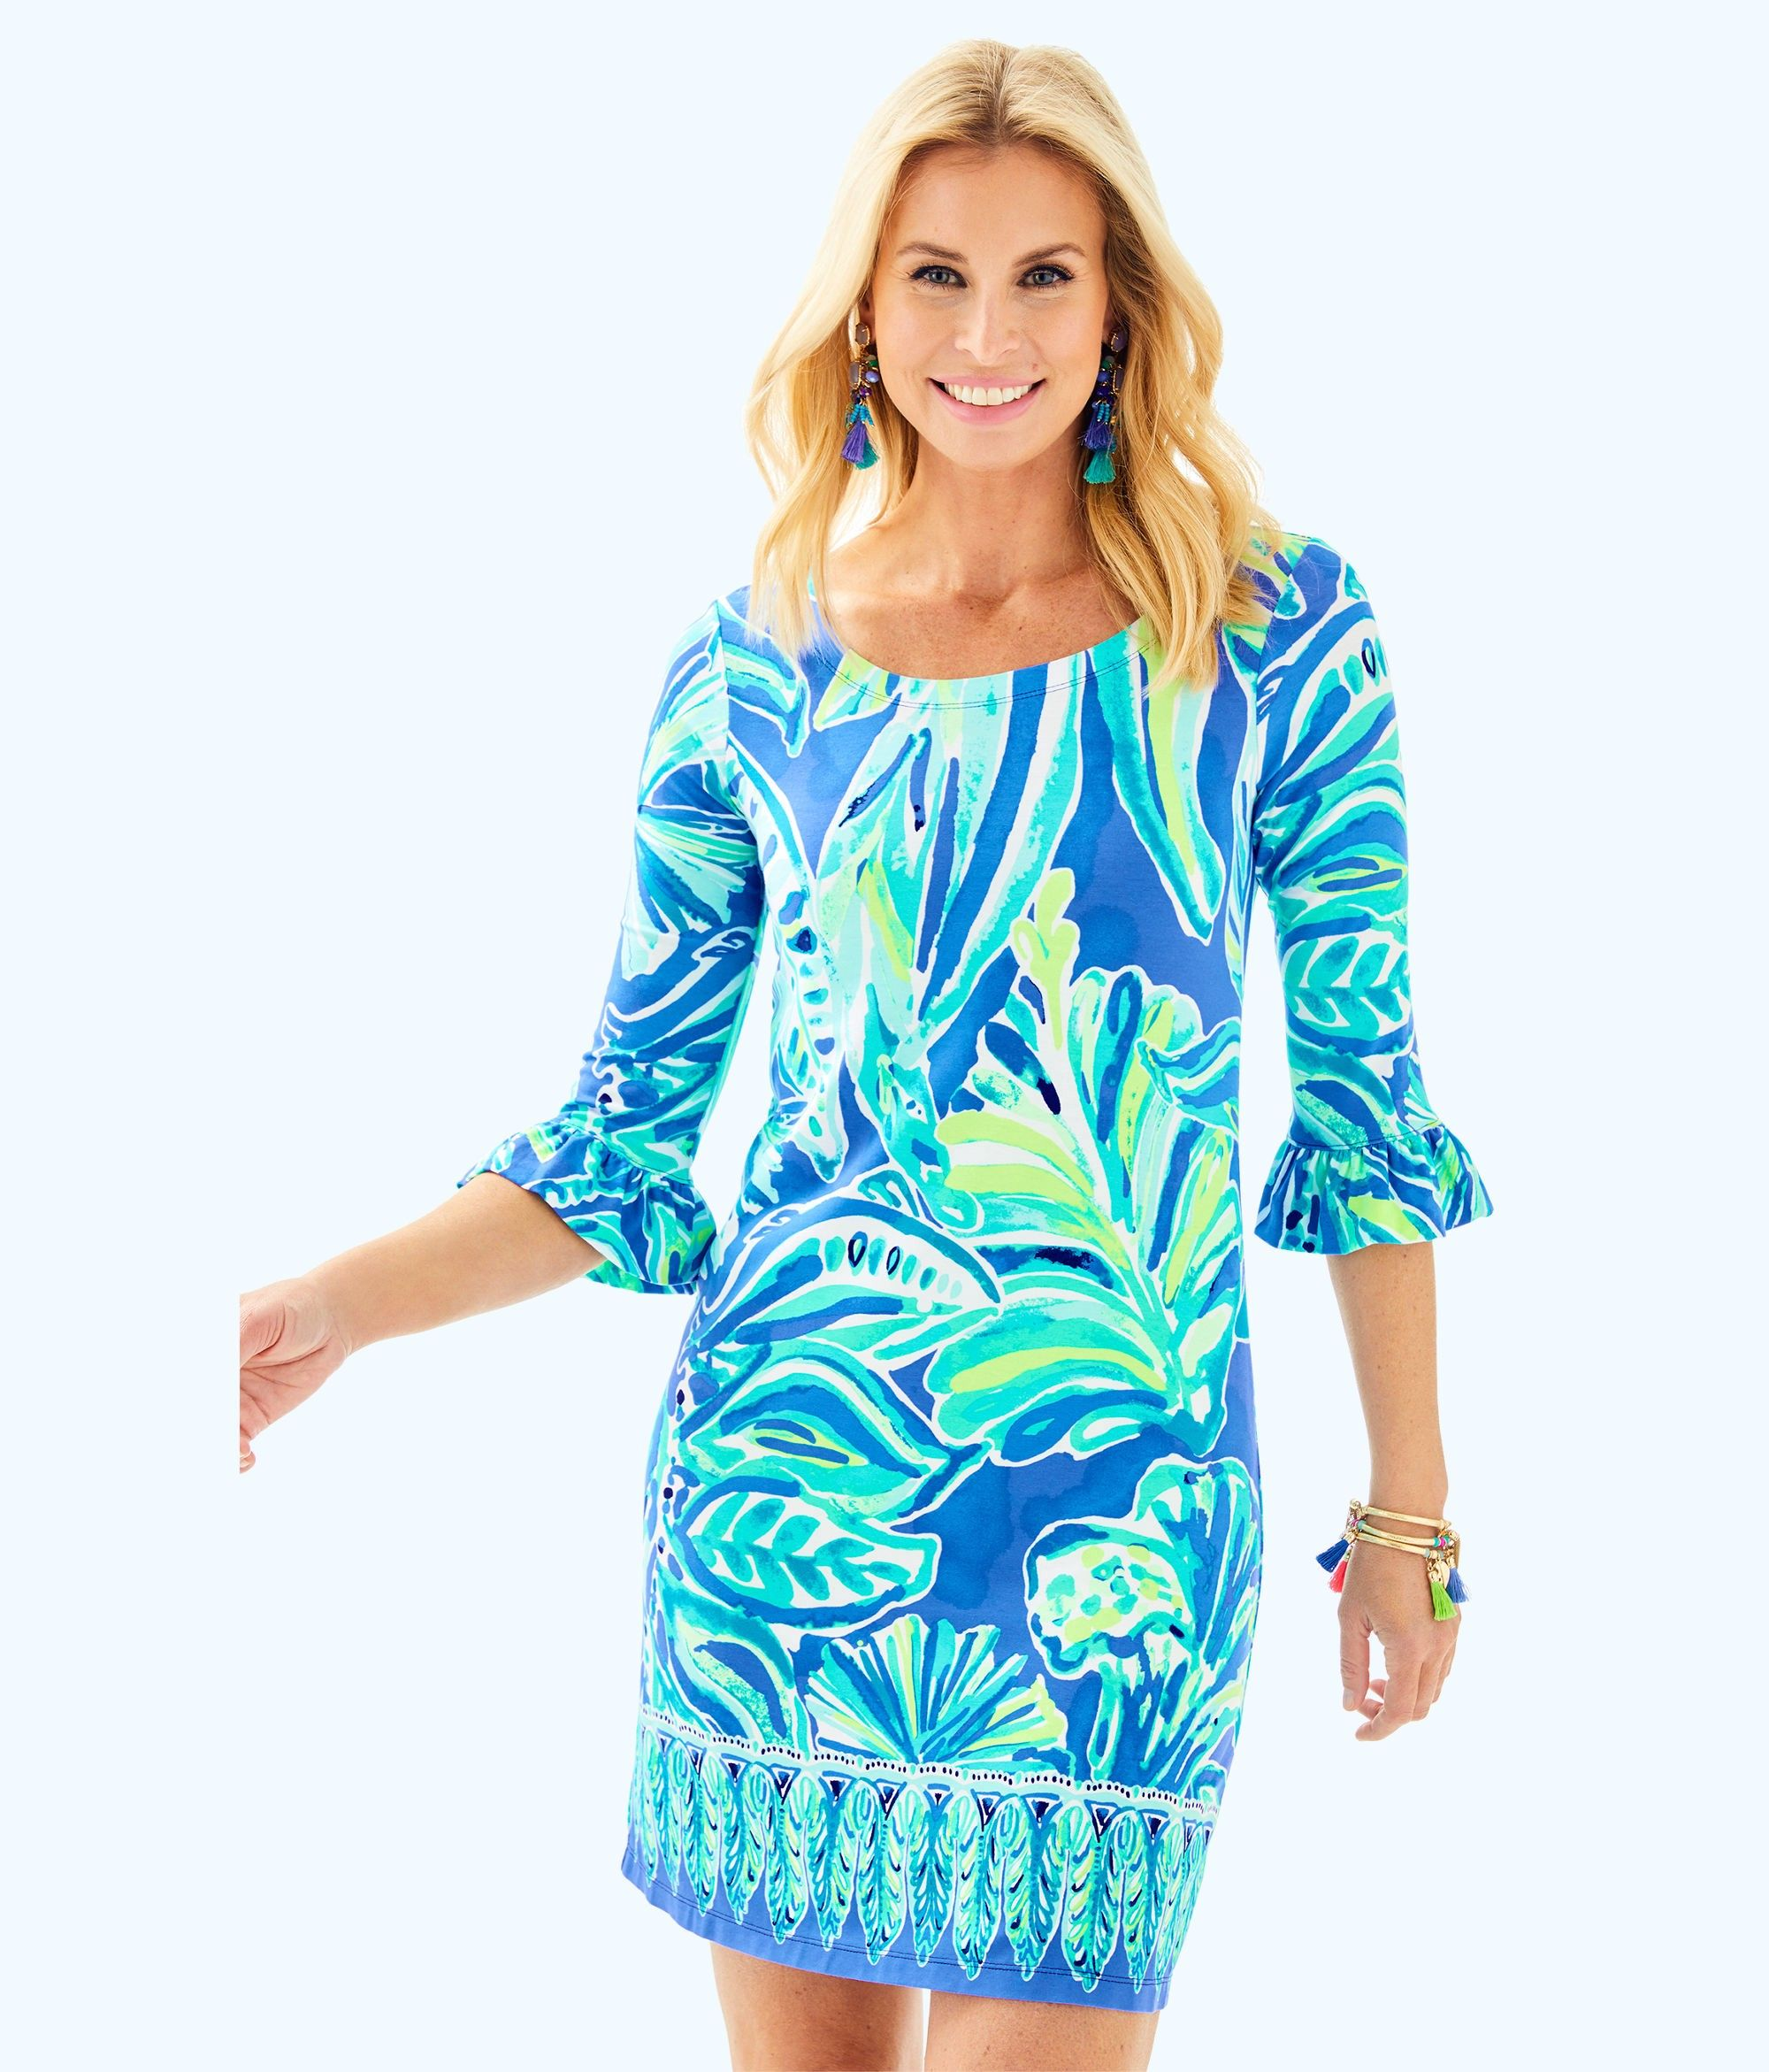 21916a10d9906d Lilly Pulitzer Upf 50+ Sophie Ruffle Dress - XXS | Products ...